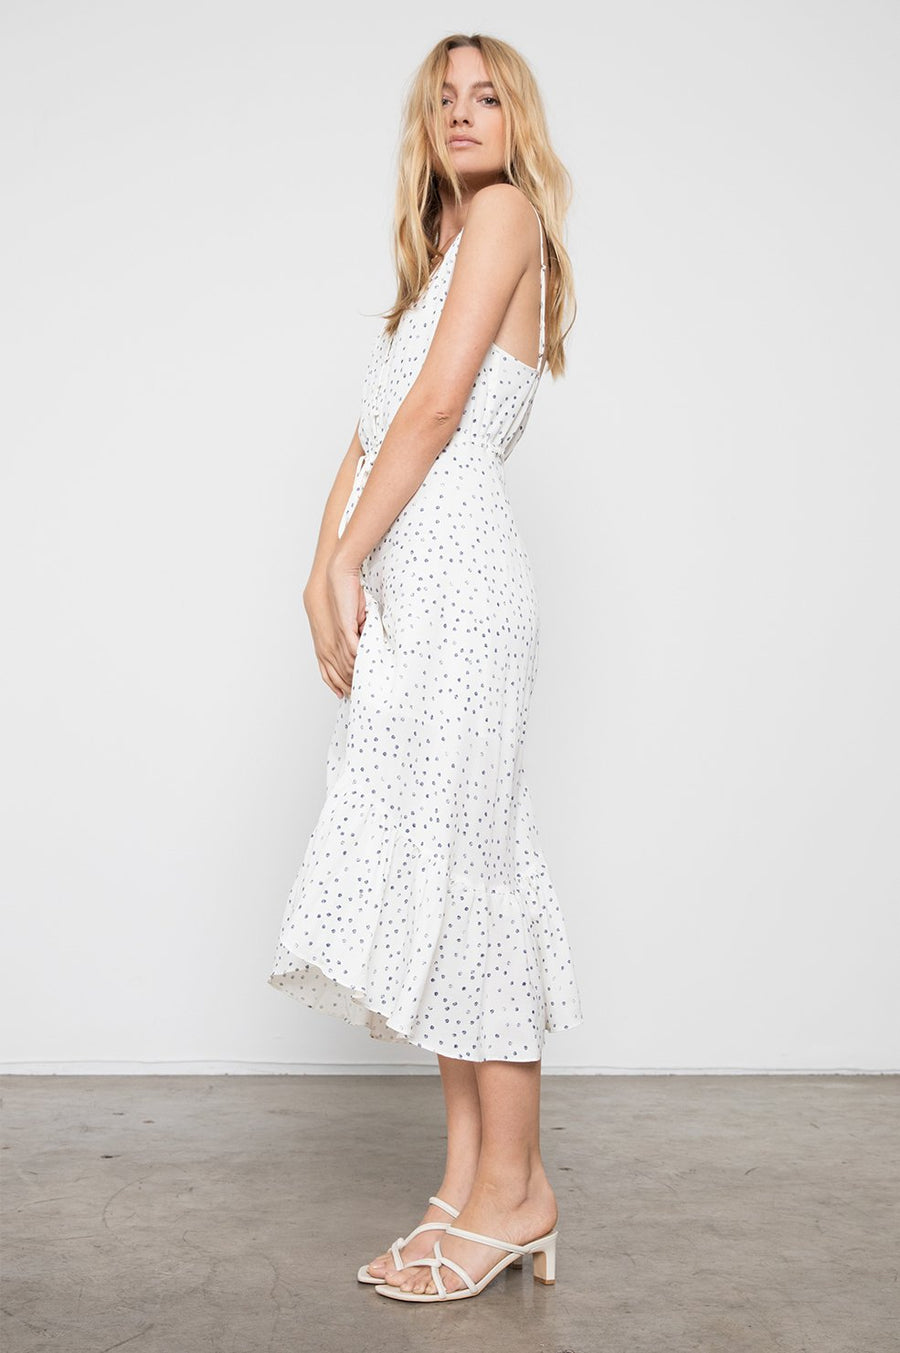 Frida Dress - Ivory Speckled